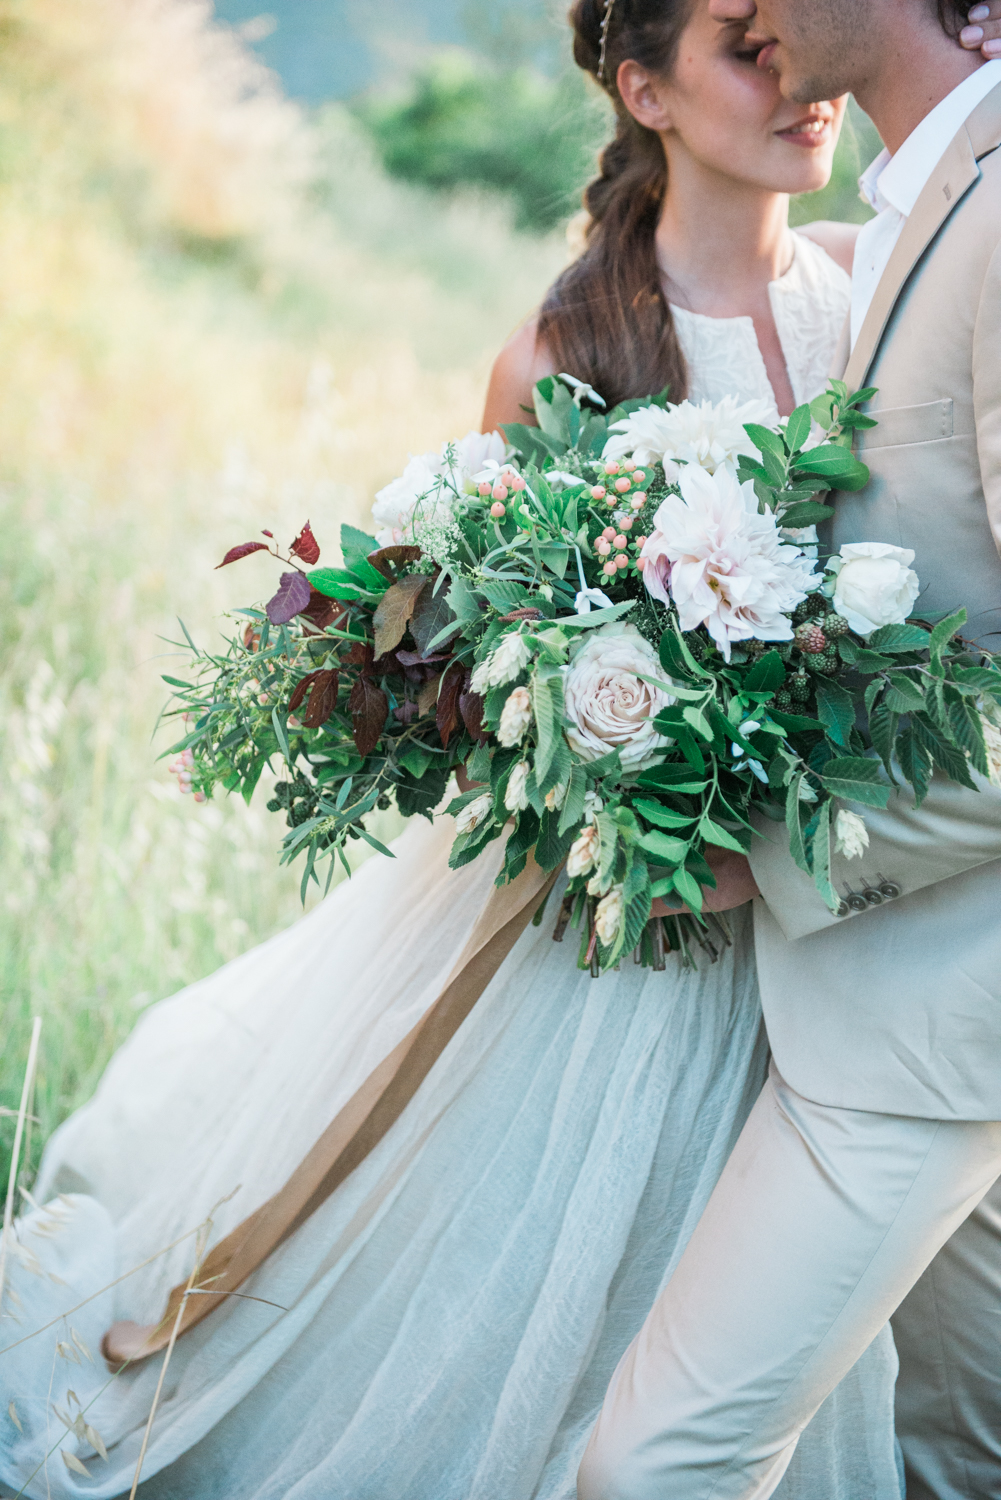 A stunning wedding bouquet by Isa Events